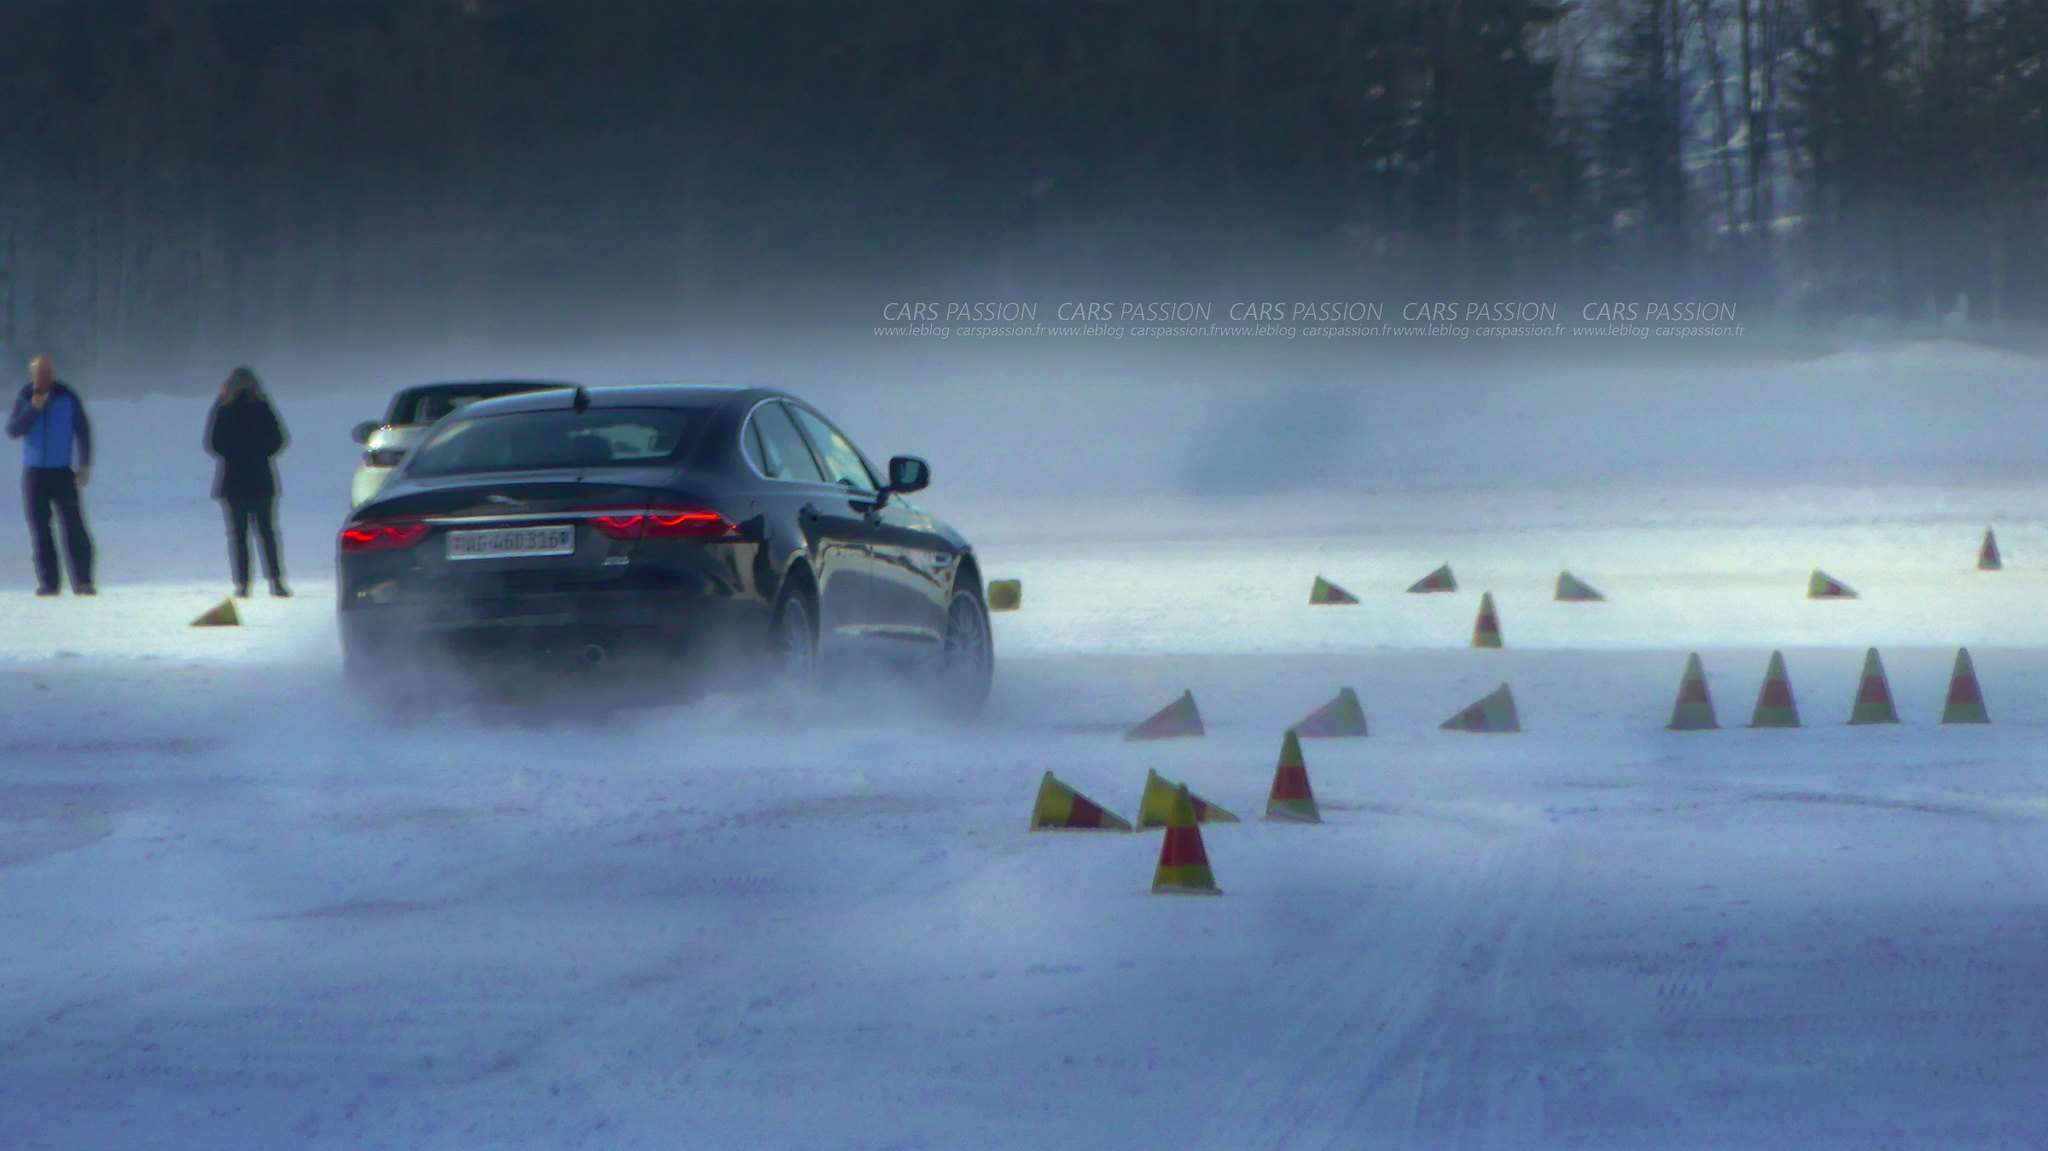 land-rover-ice-drivng-esperience-gstaad-(55)